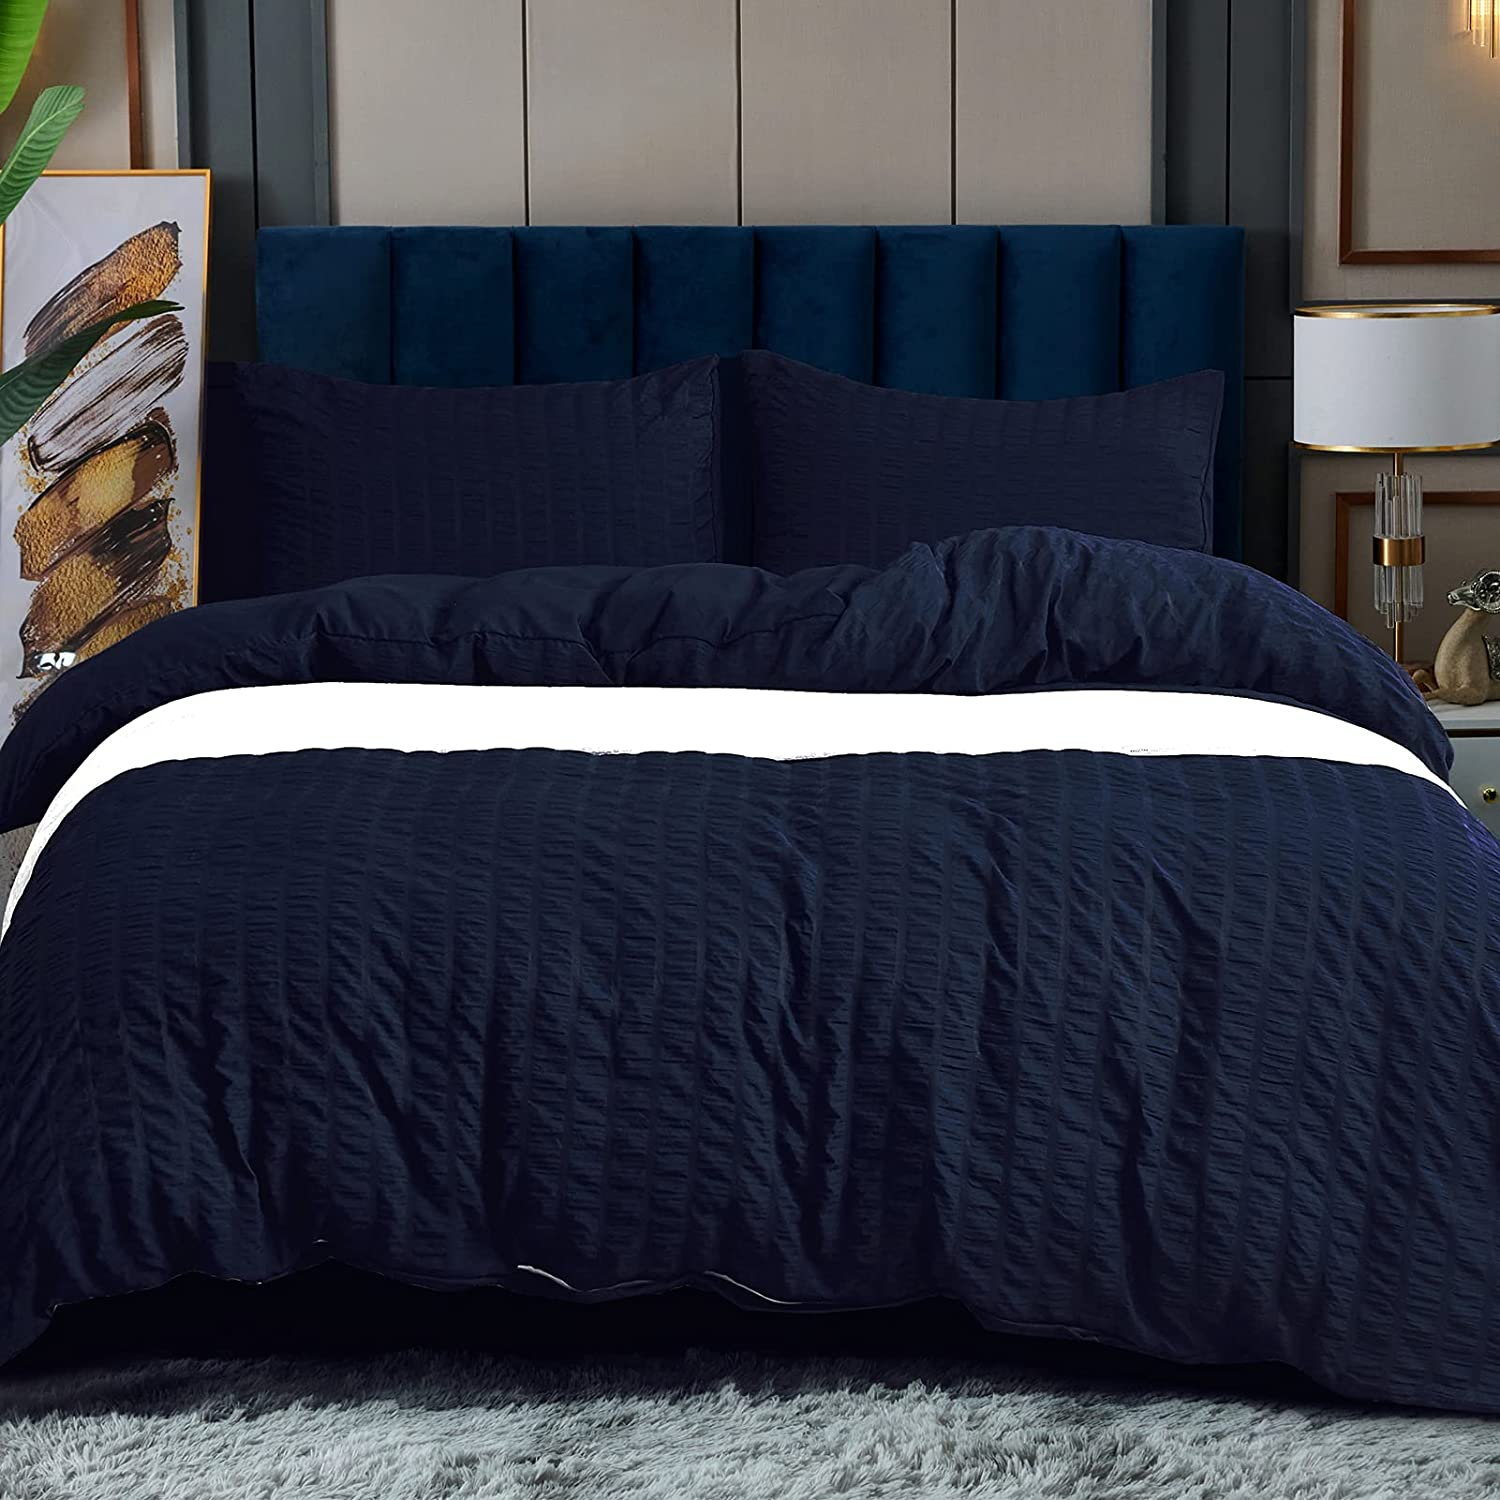 Navy Blue Seersucker Duvet Cover low-pricing King Size Mic Soft Industry No. 1 Washed 100%